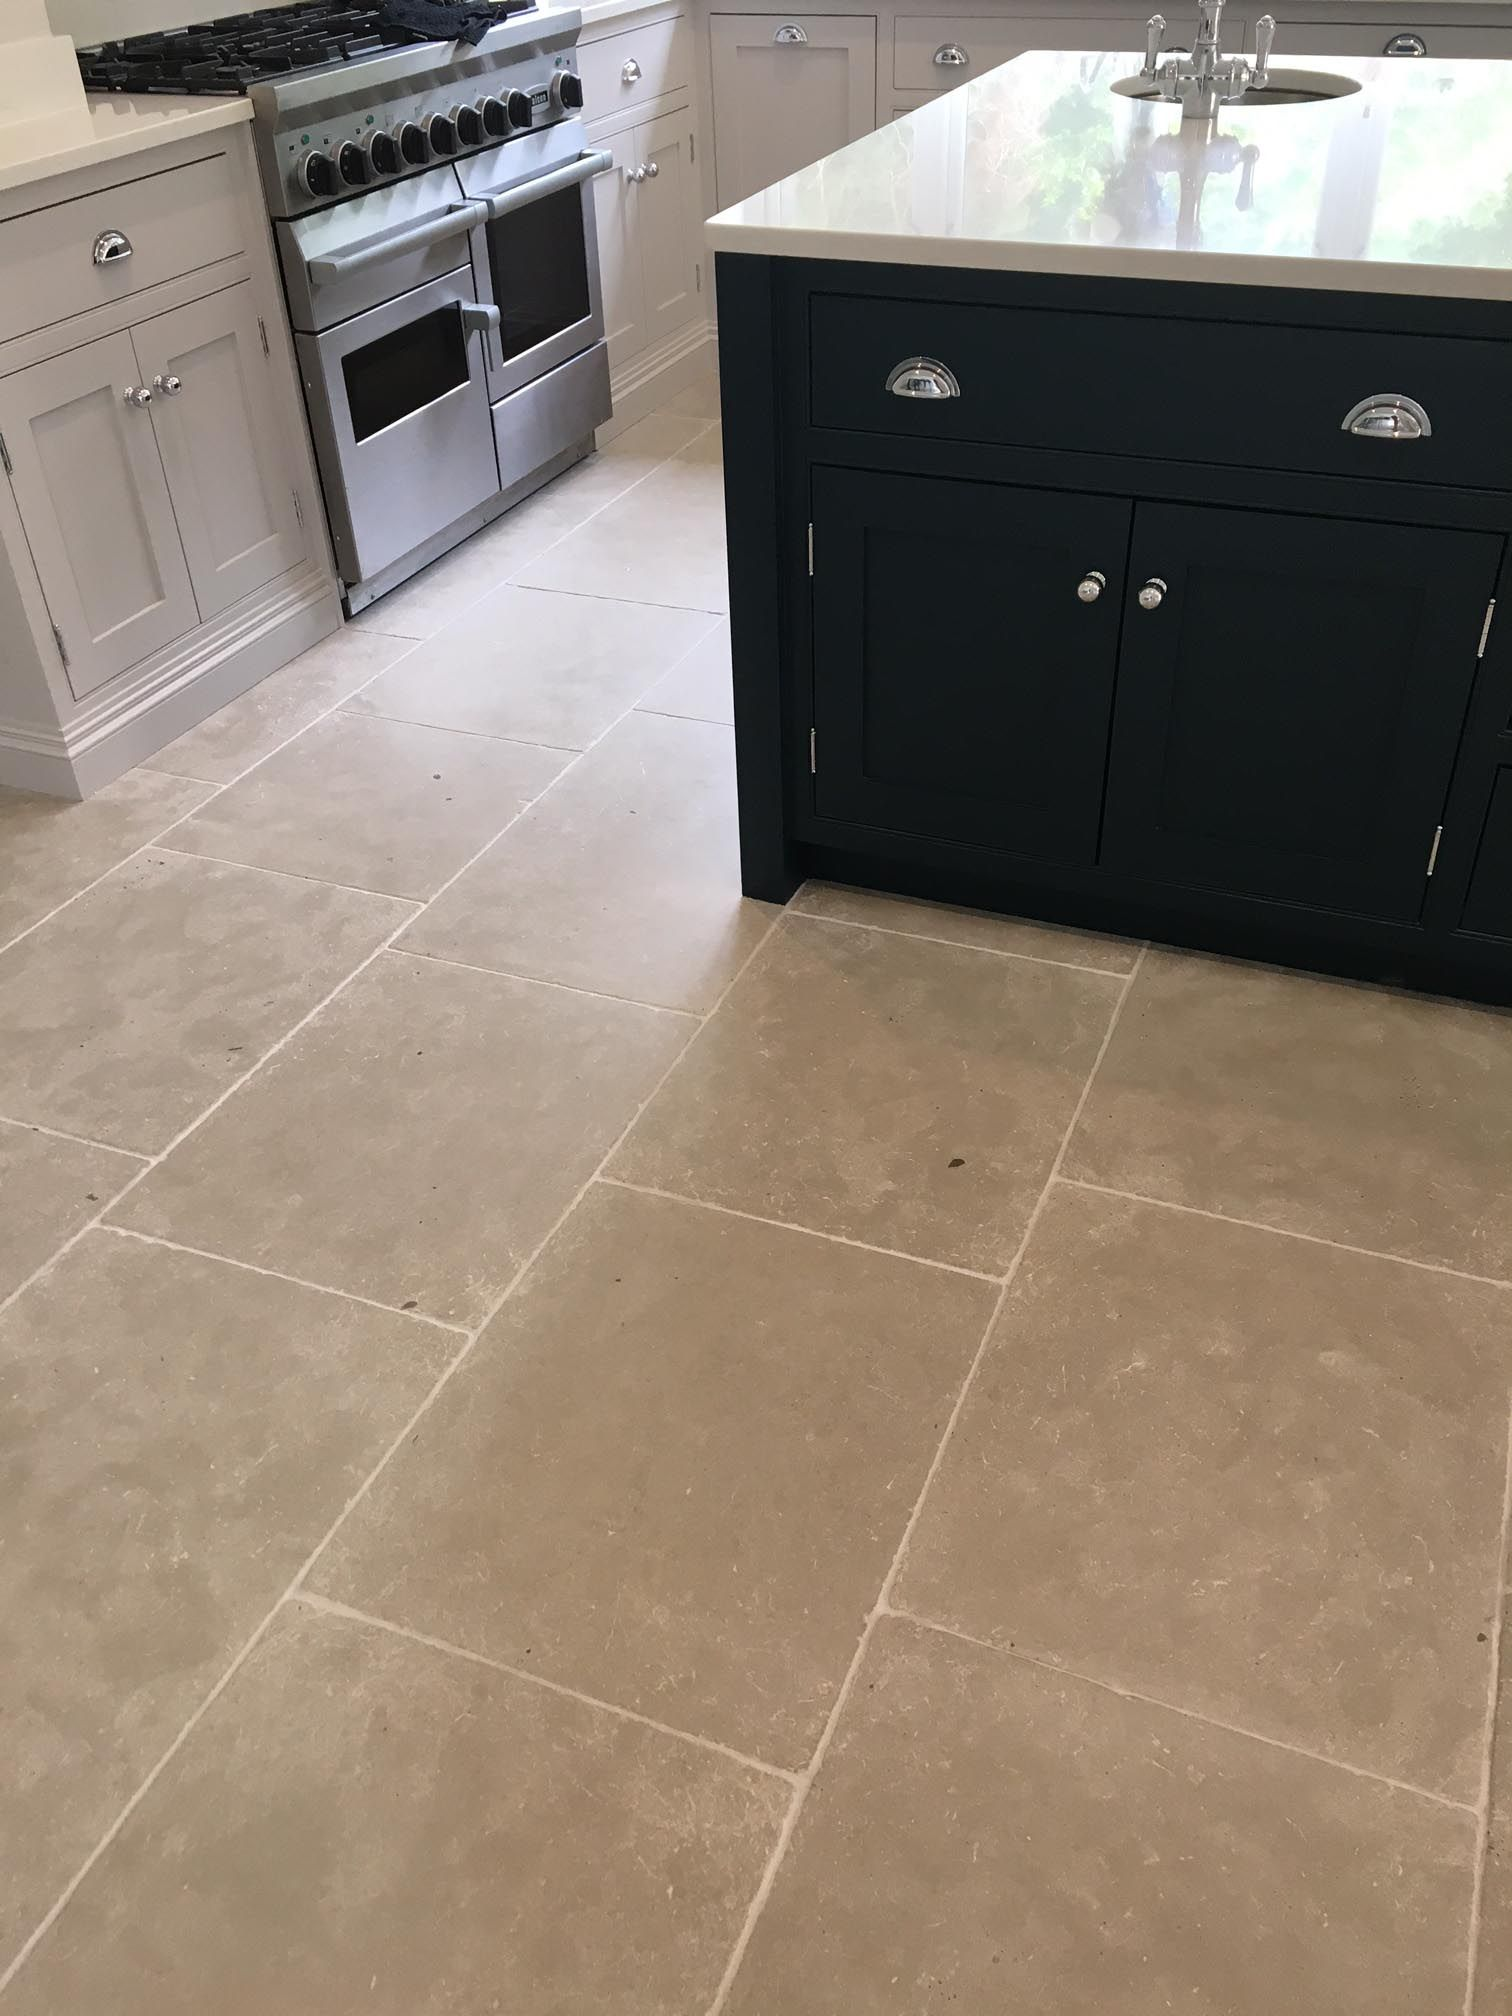 Rustic grey limestone floor tiles paris grey this grey flag a consistent light to medium grey stone with a hint of blue tone and cloudy appearance this is an antiqued tumbled natural flagstone dailygadgetfo Gallery